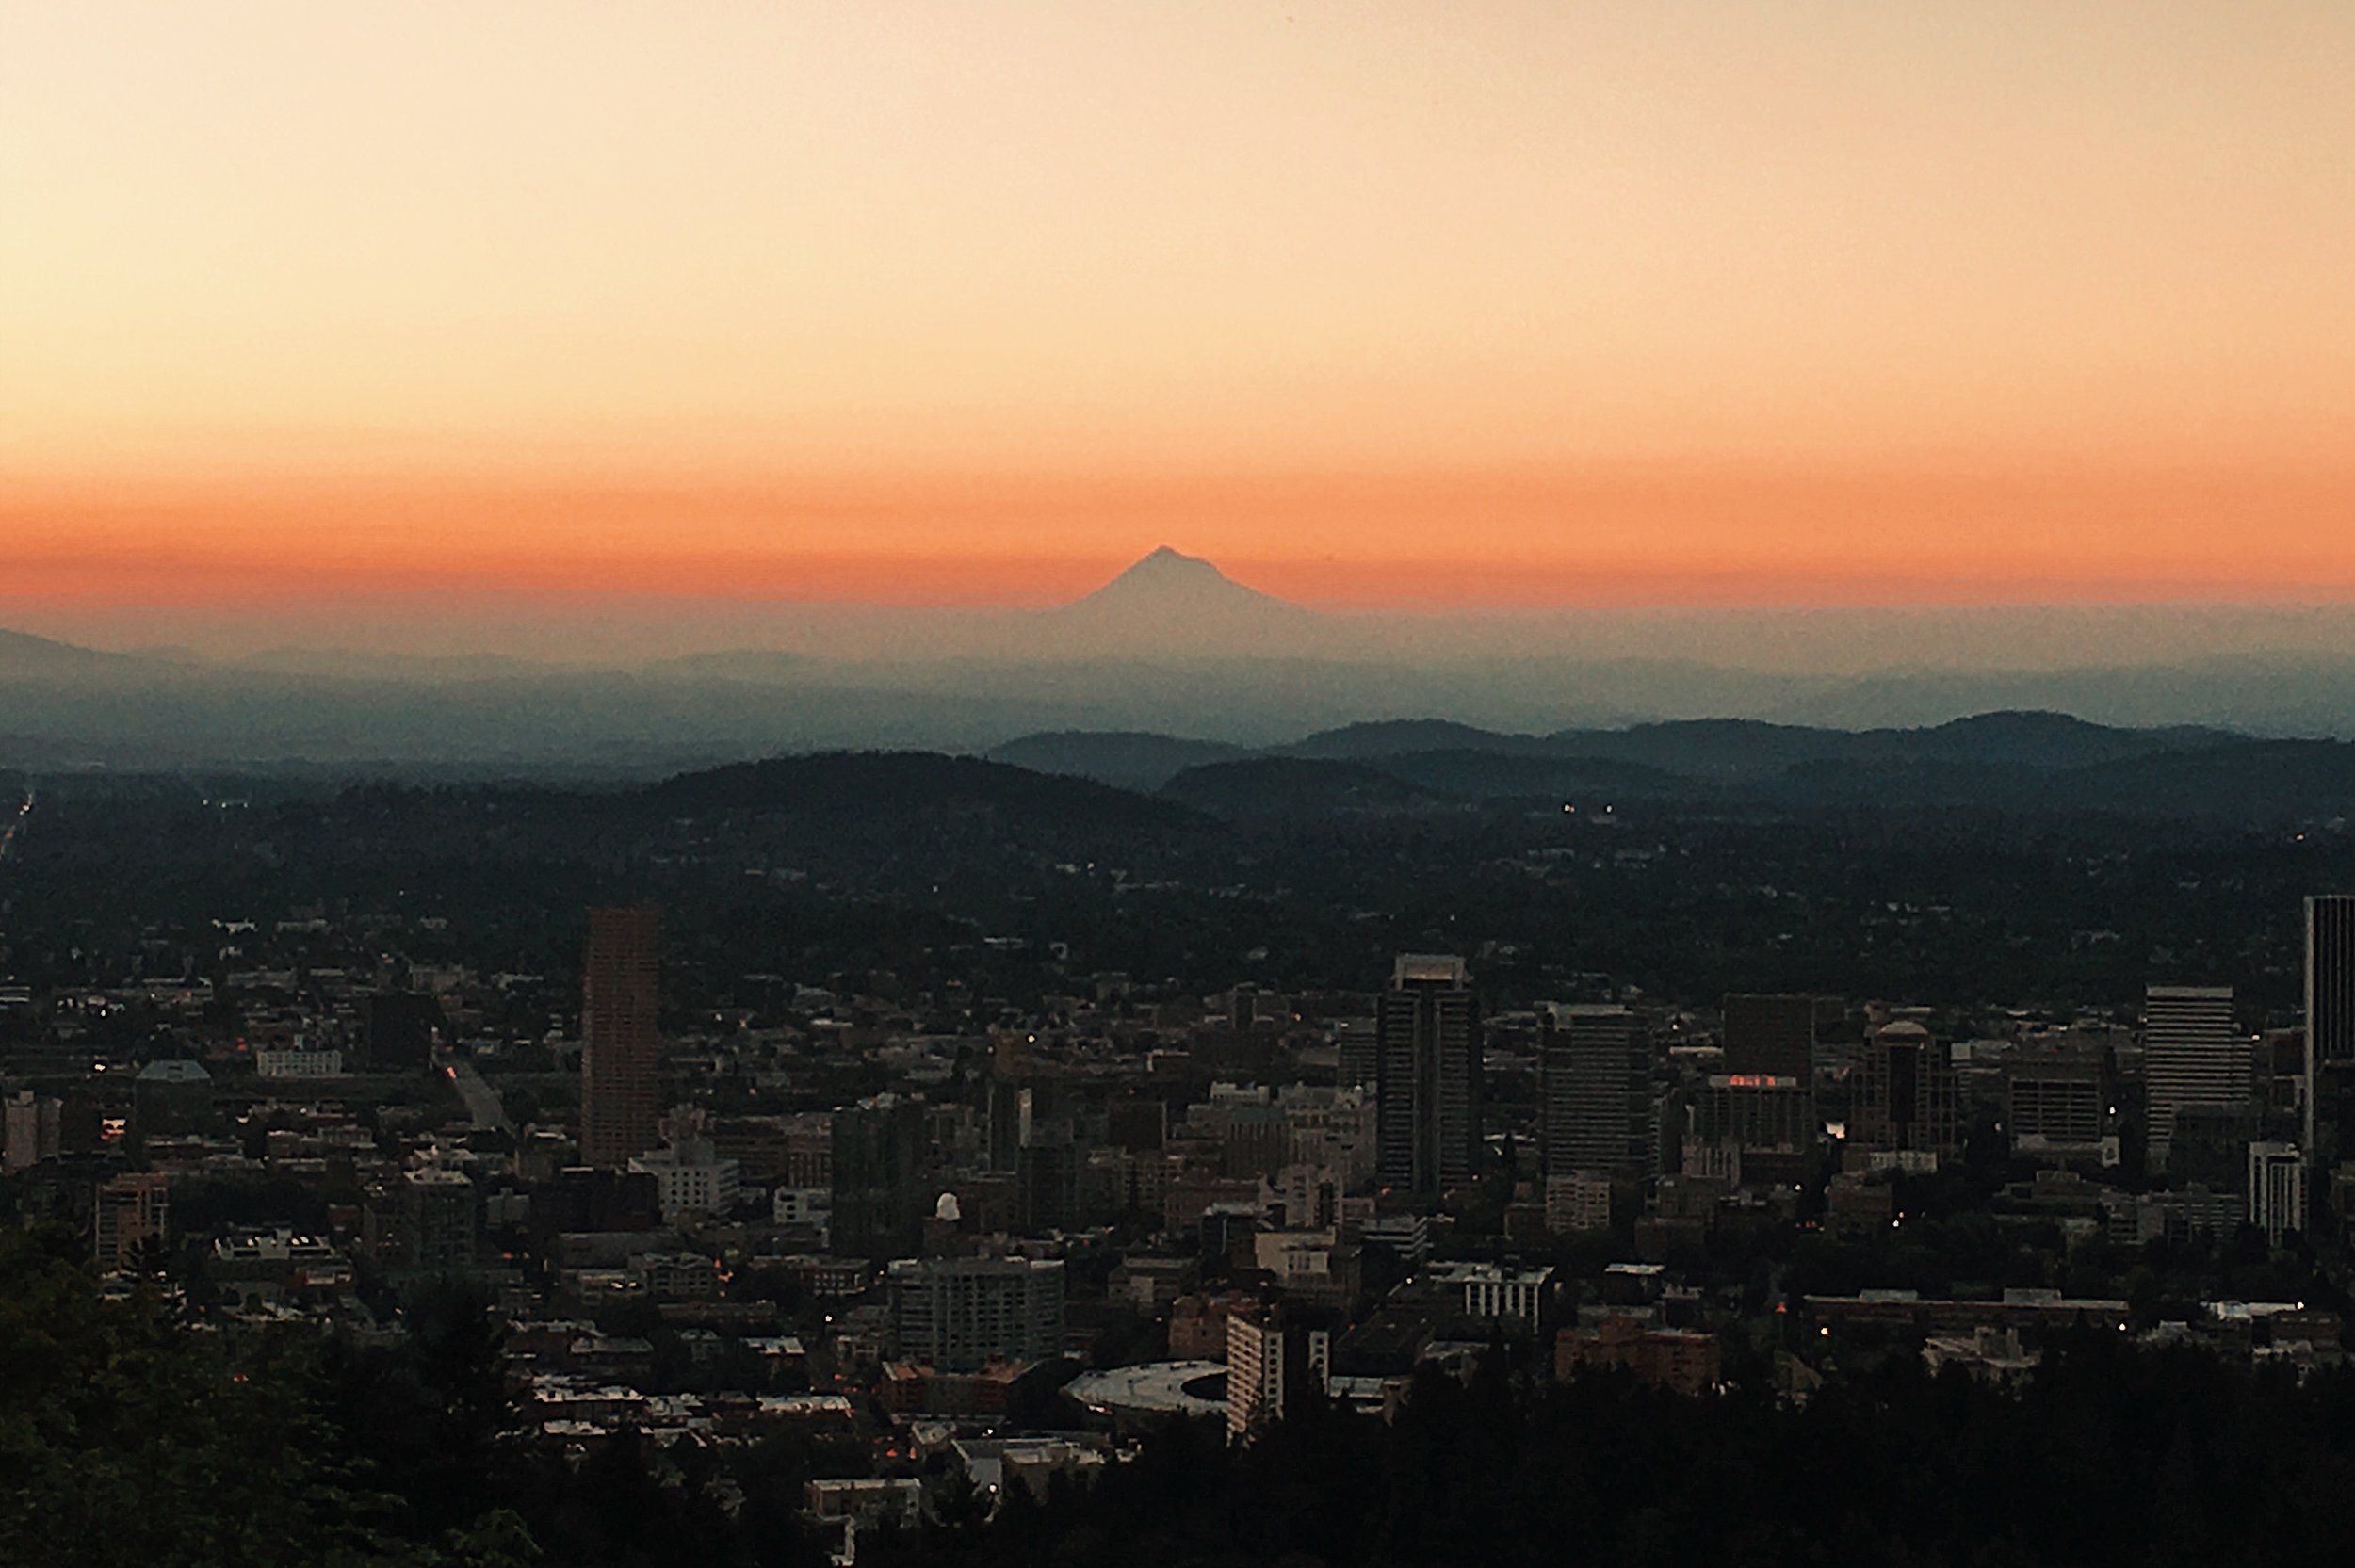 Pittock Mansion, OR